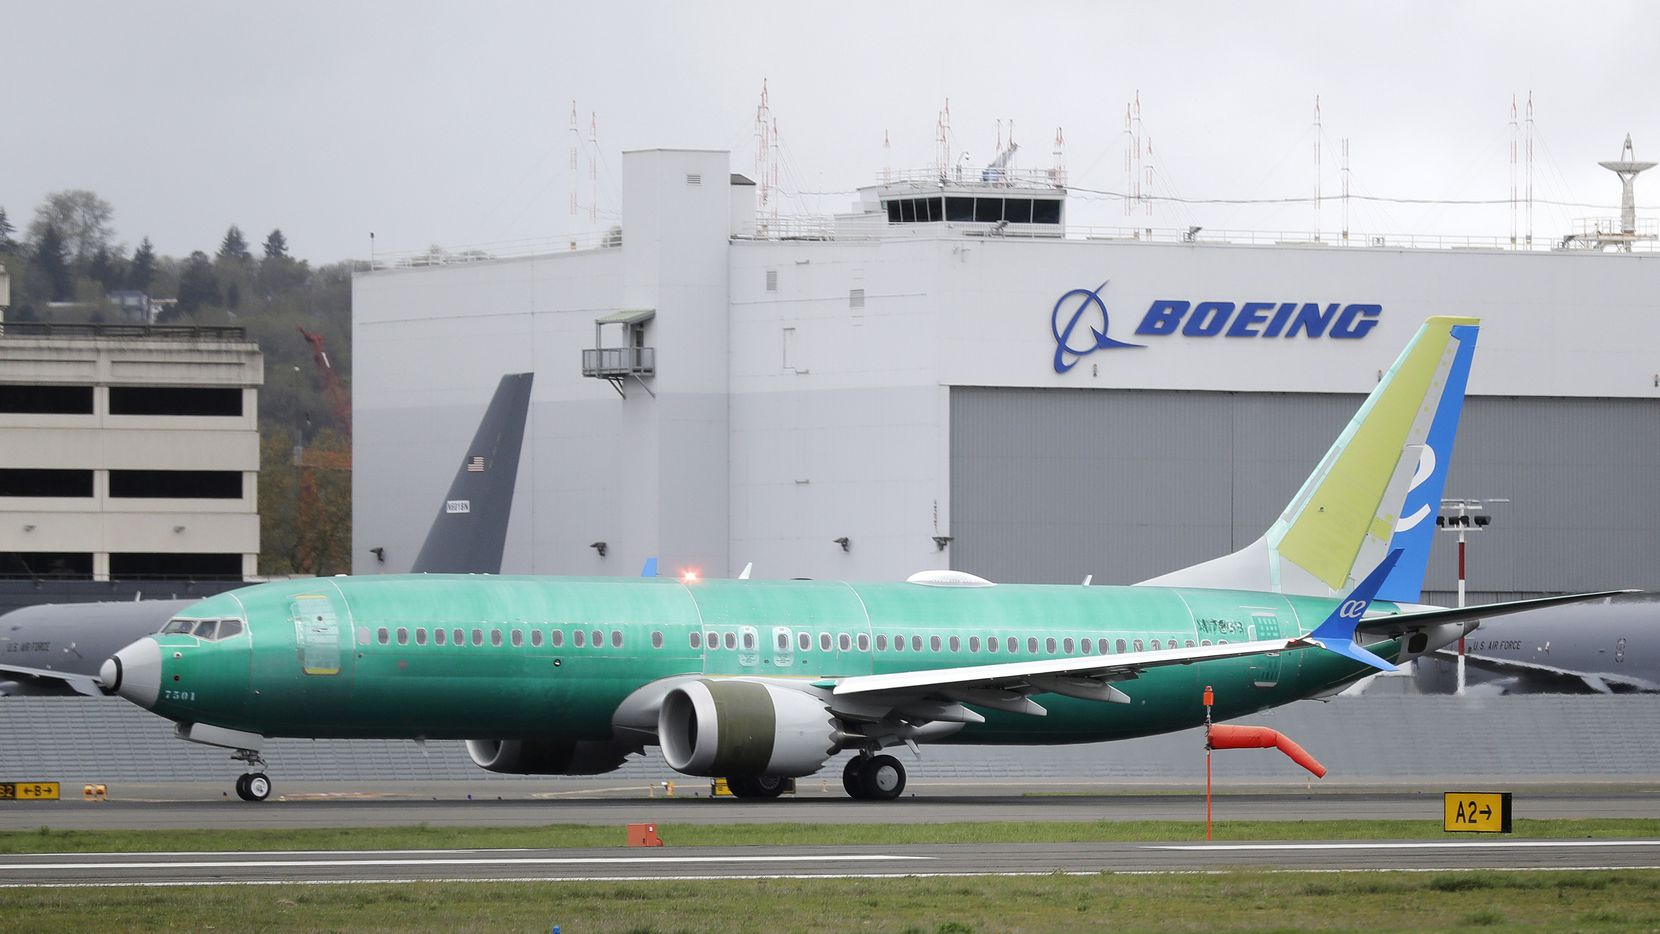 FILE - In this April 10, 2019, file photo a Boeing 737 MAX 8 airplane rolls toward takeoff before a test flight at Boeing Field in Seattle. A Chicago law firm says it has settled lawsuits against Boeing on behalf of the families of 11 passengers killed in the crash of a Lion Air jet off the coast of Indonesia. (AP Photo/Ted S. Warren, File)